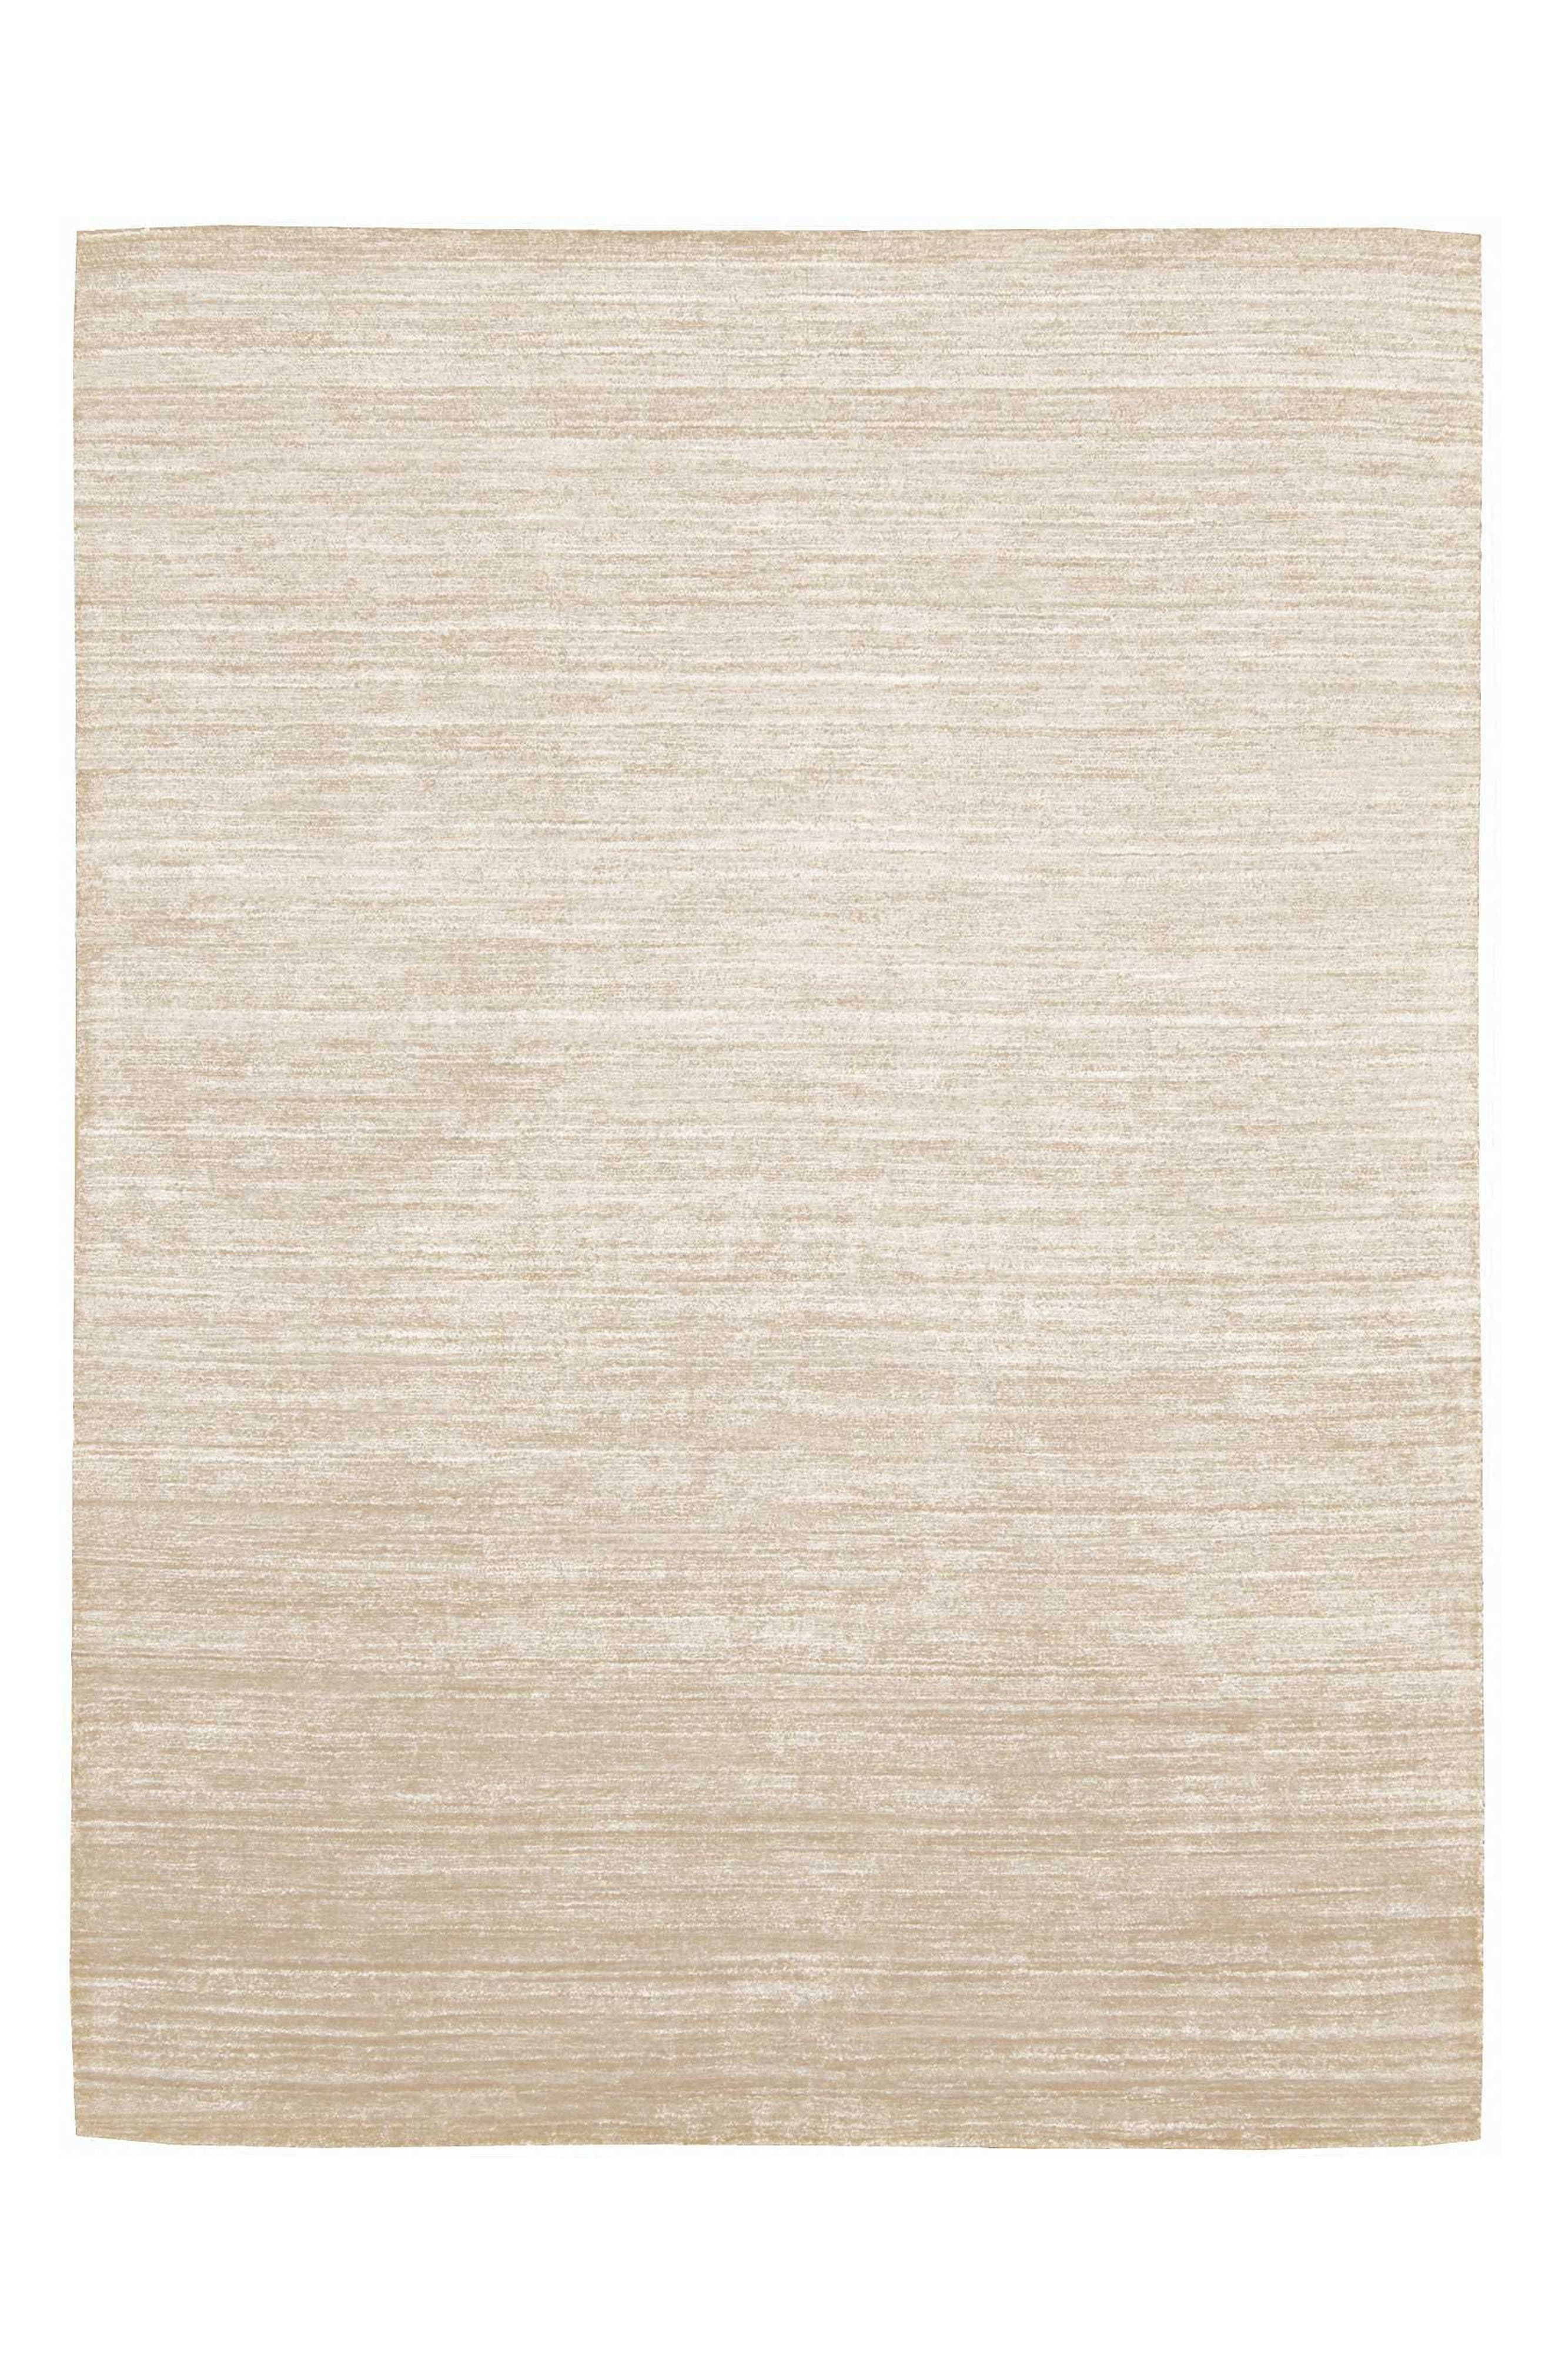 Home Shimmer Mineral Area Rug,                             Main thumbnail 3, color,